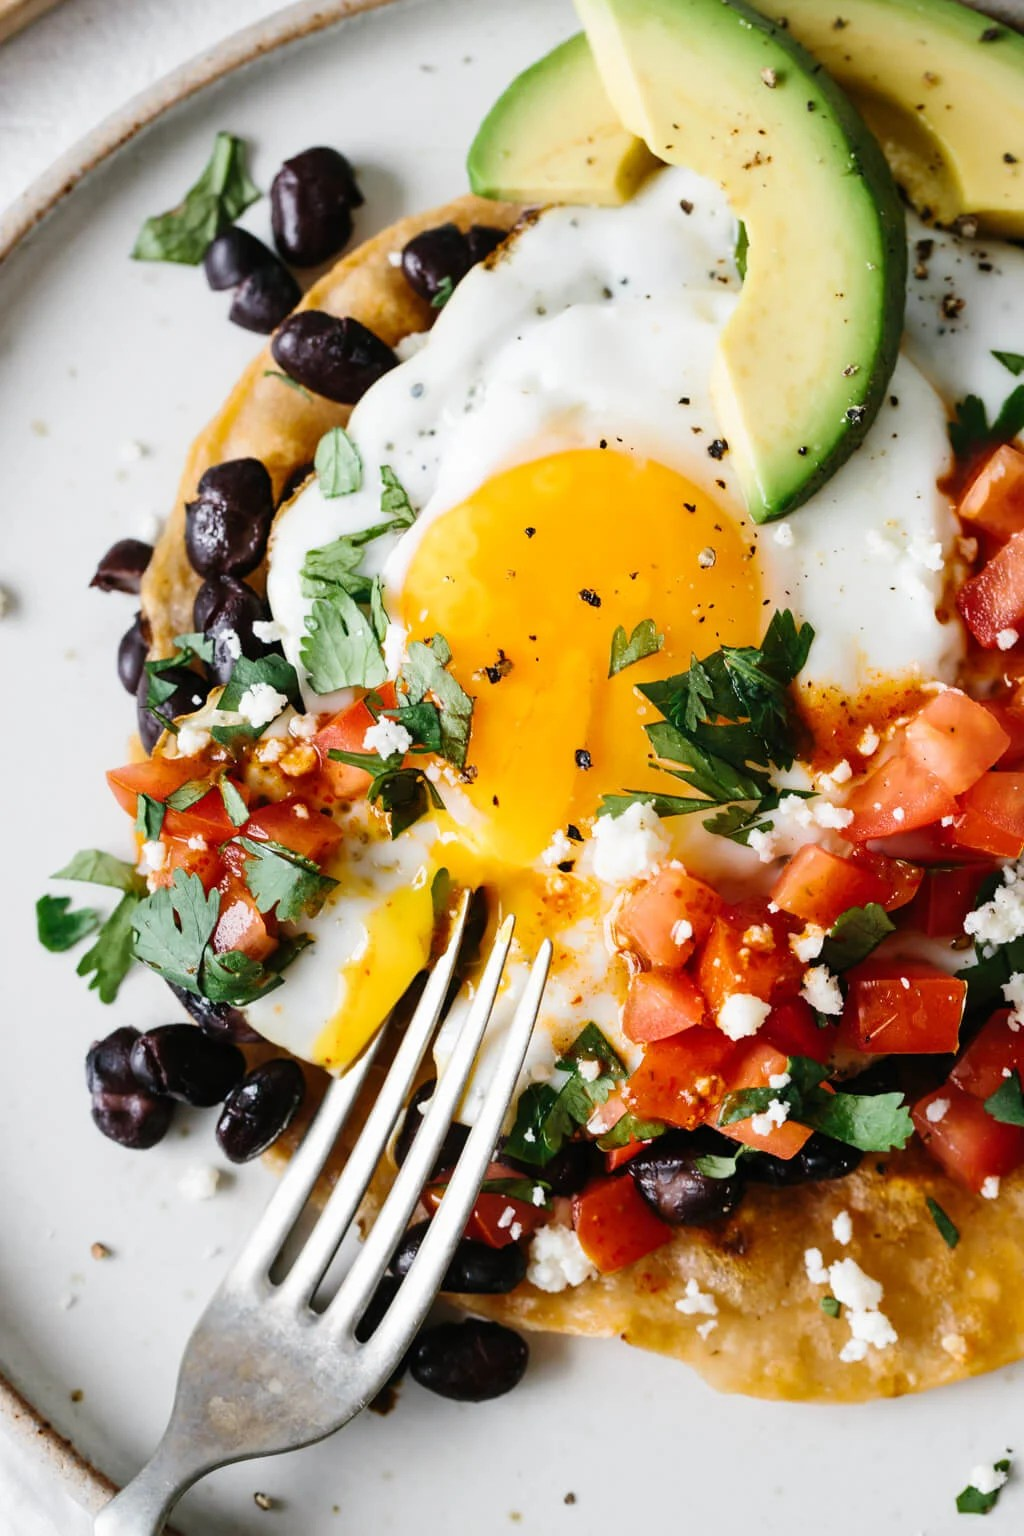 A fork broke open the yolk on a plate of huevos rancheros.